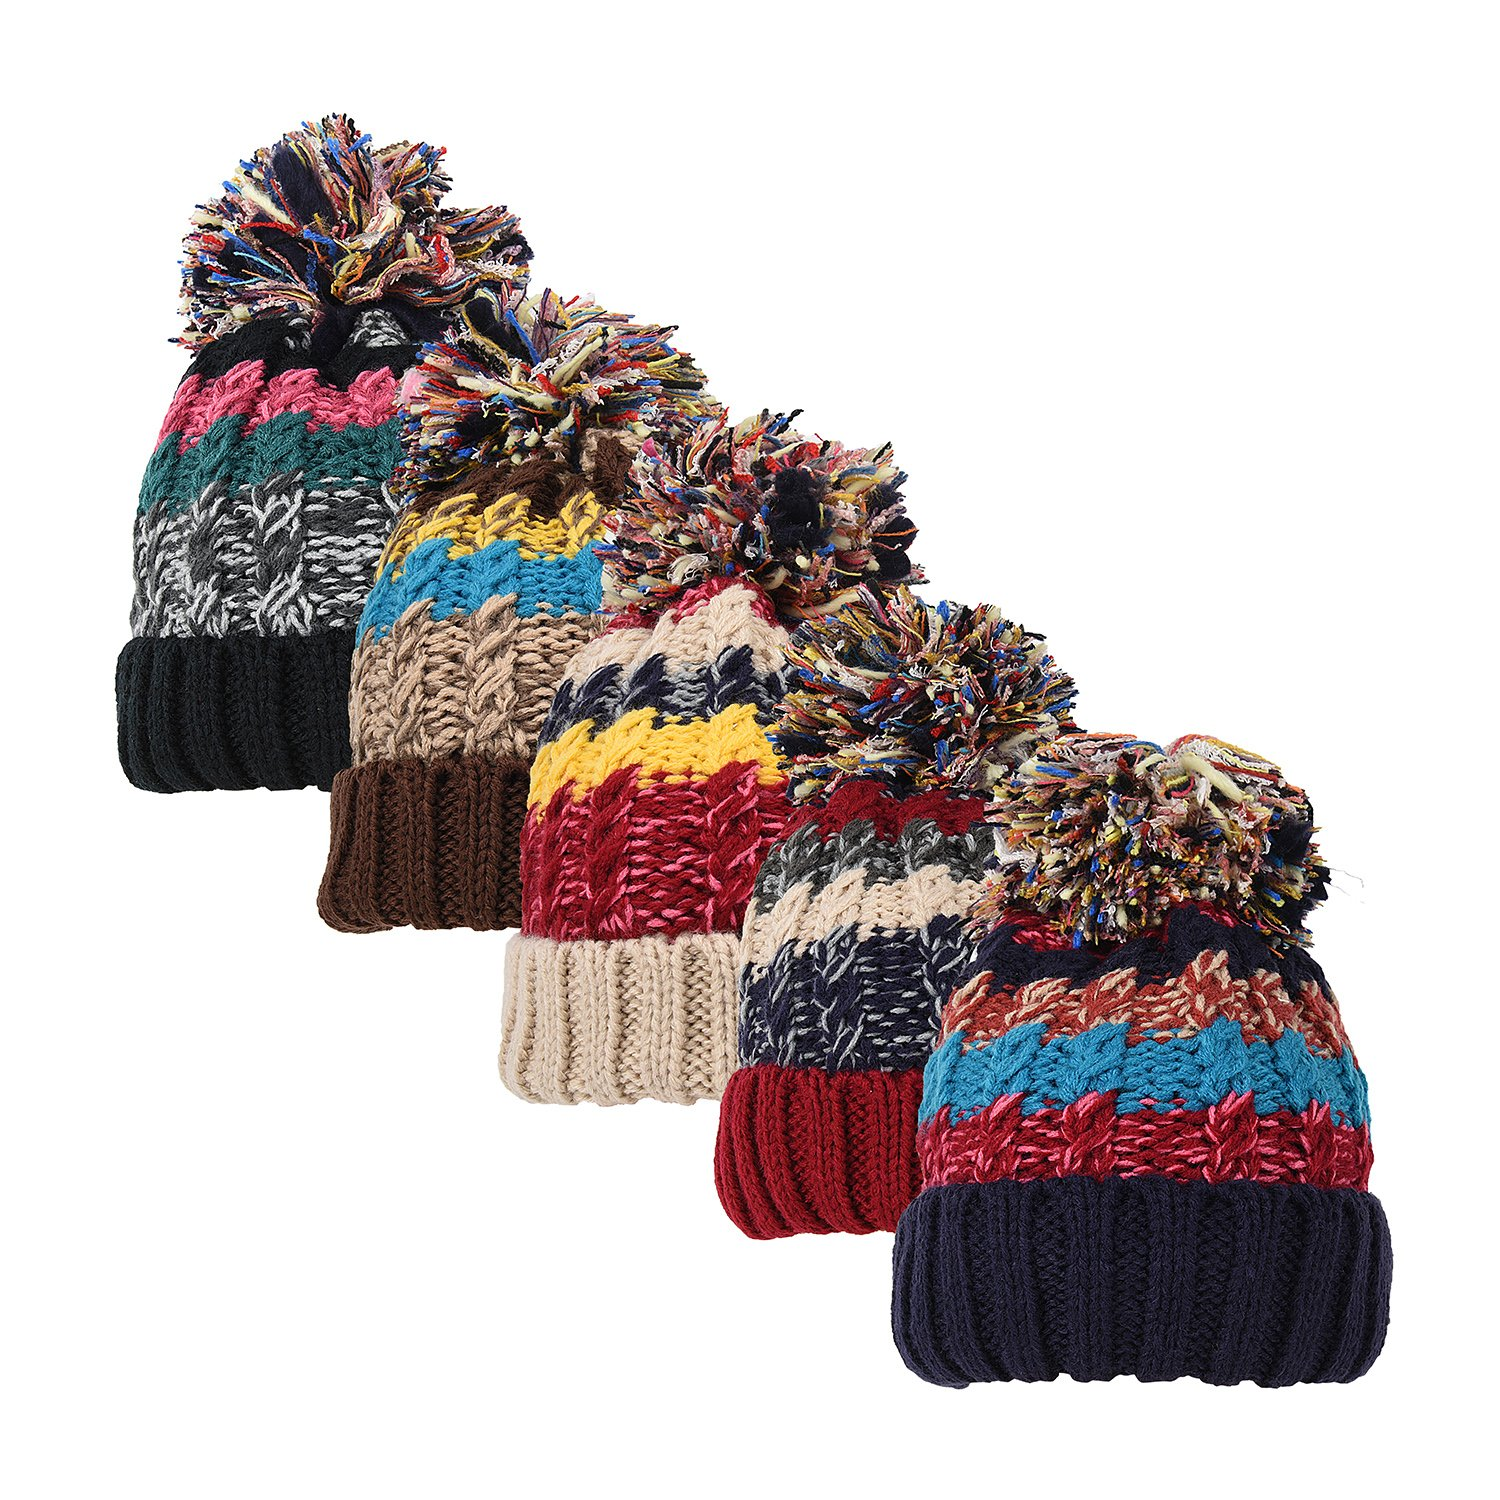 Womens Girls Pom Hats Marl Chunky Knit Winter Bobble Snowboard Hat with Fleece Thinsulate Lining 68600A030700